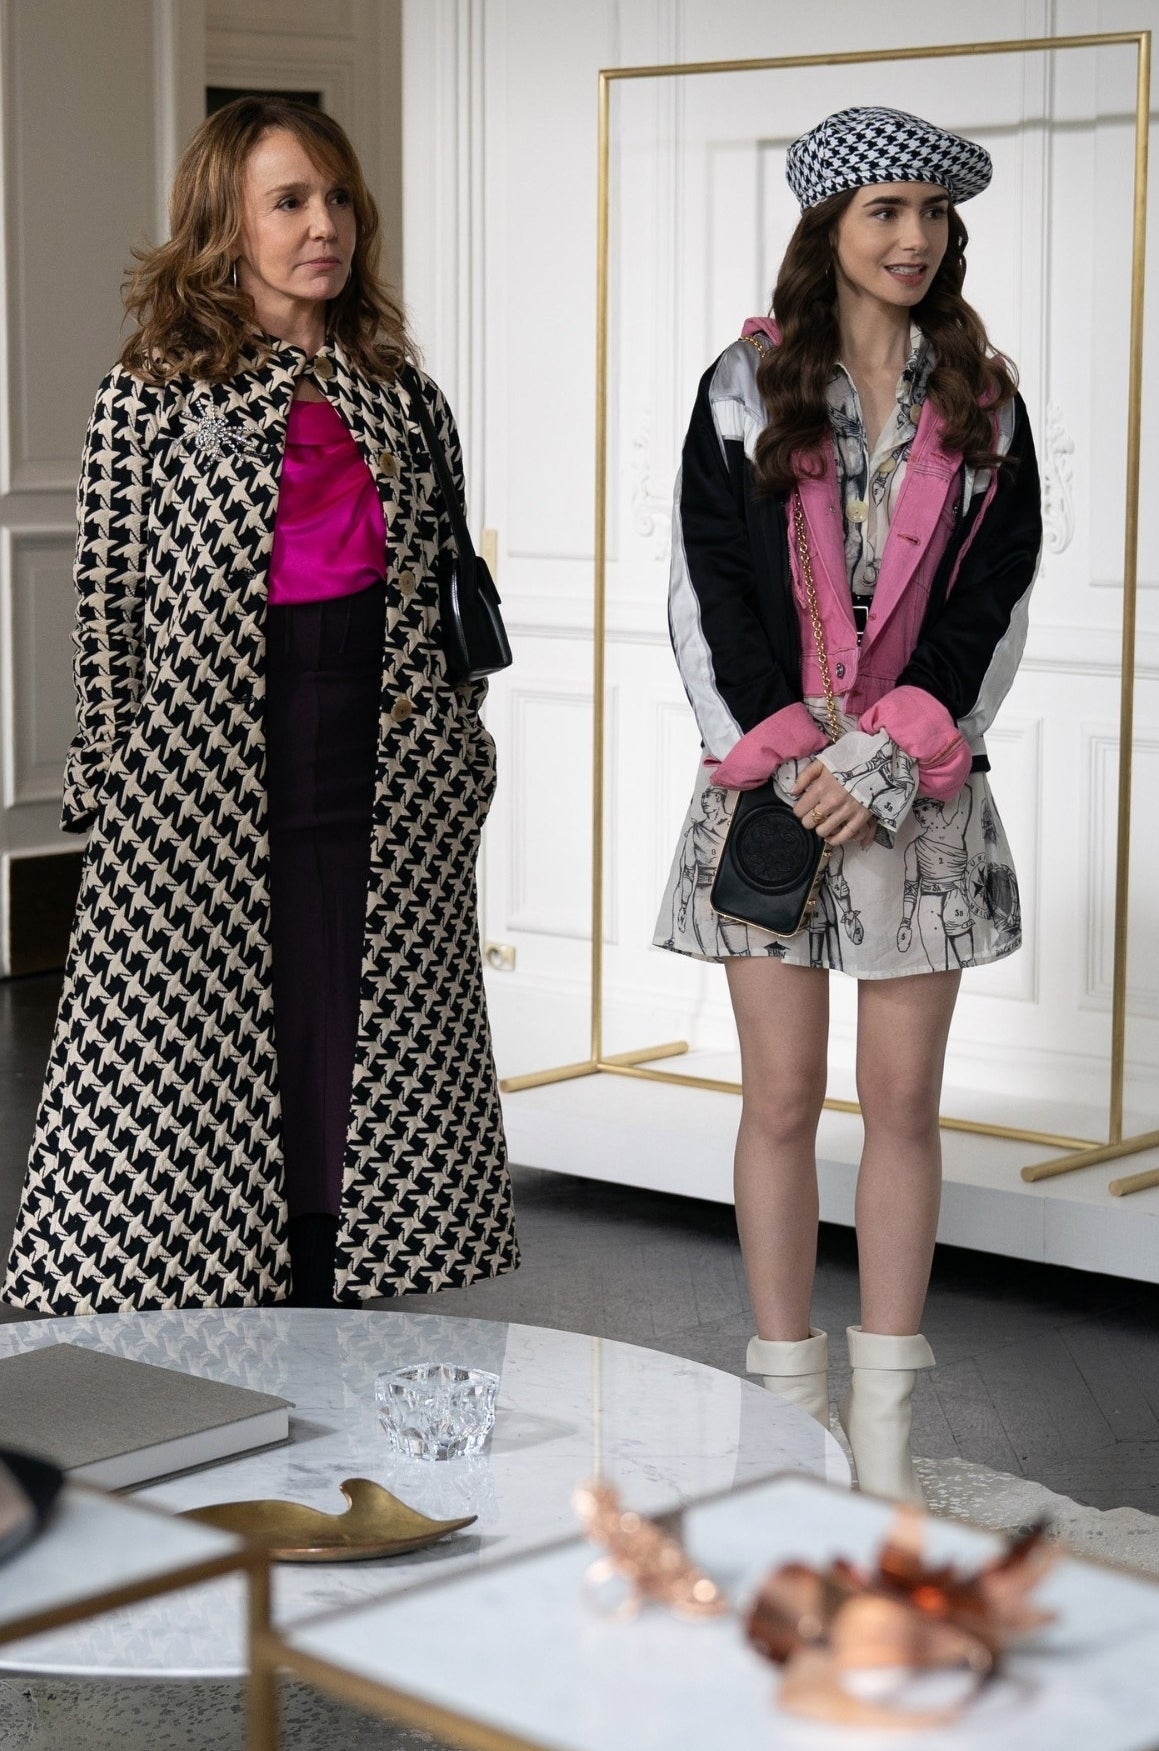 Sylvie and Emily stand in the atelier; Emily is wearing white mid-calf boots, A white dress with Roman figures on it, a pink denim jacket with a black and white windbreaker on top, and a houndstooth beret